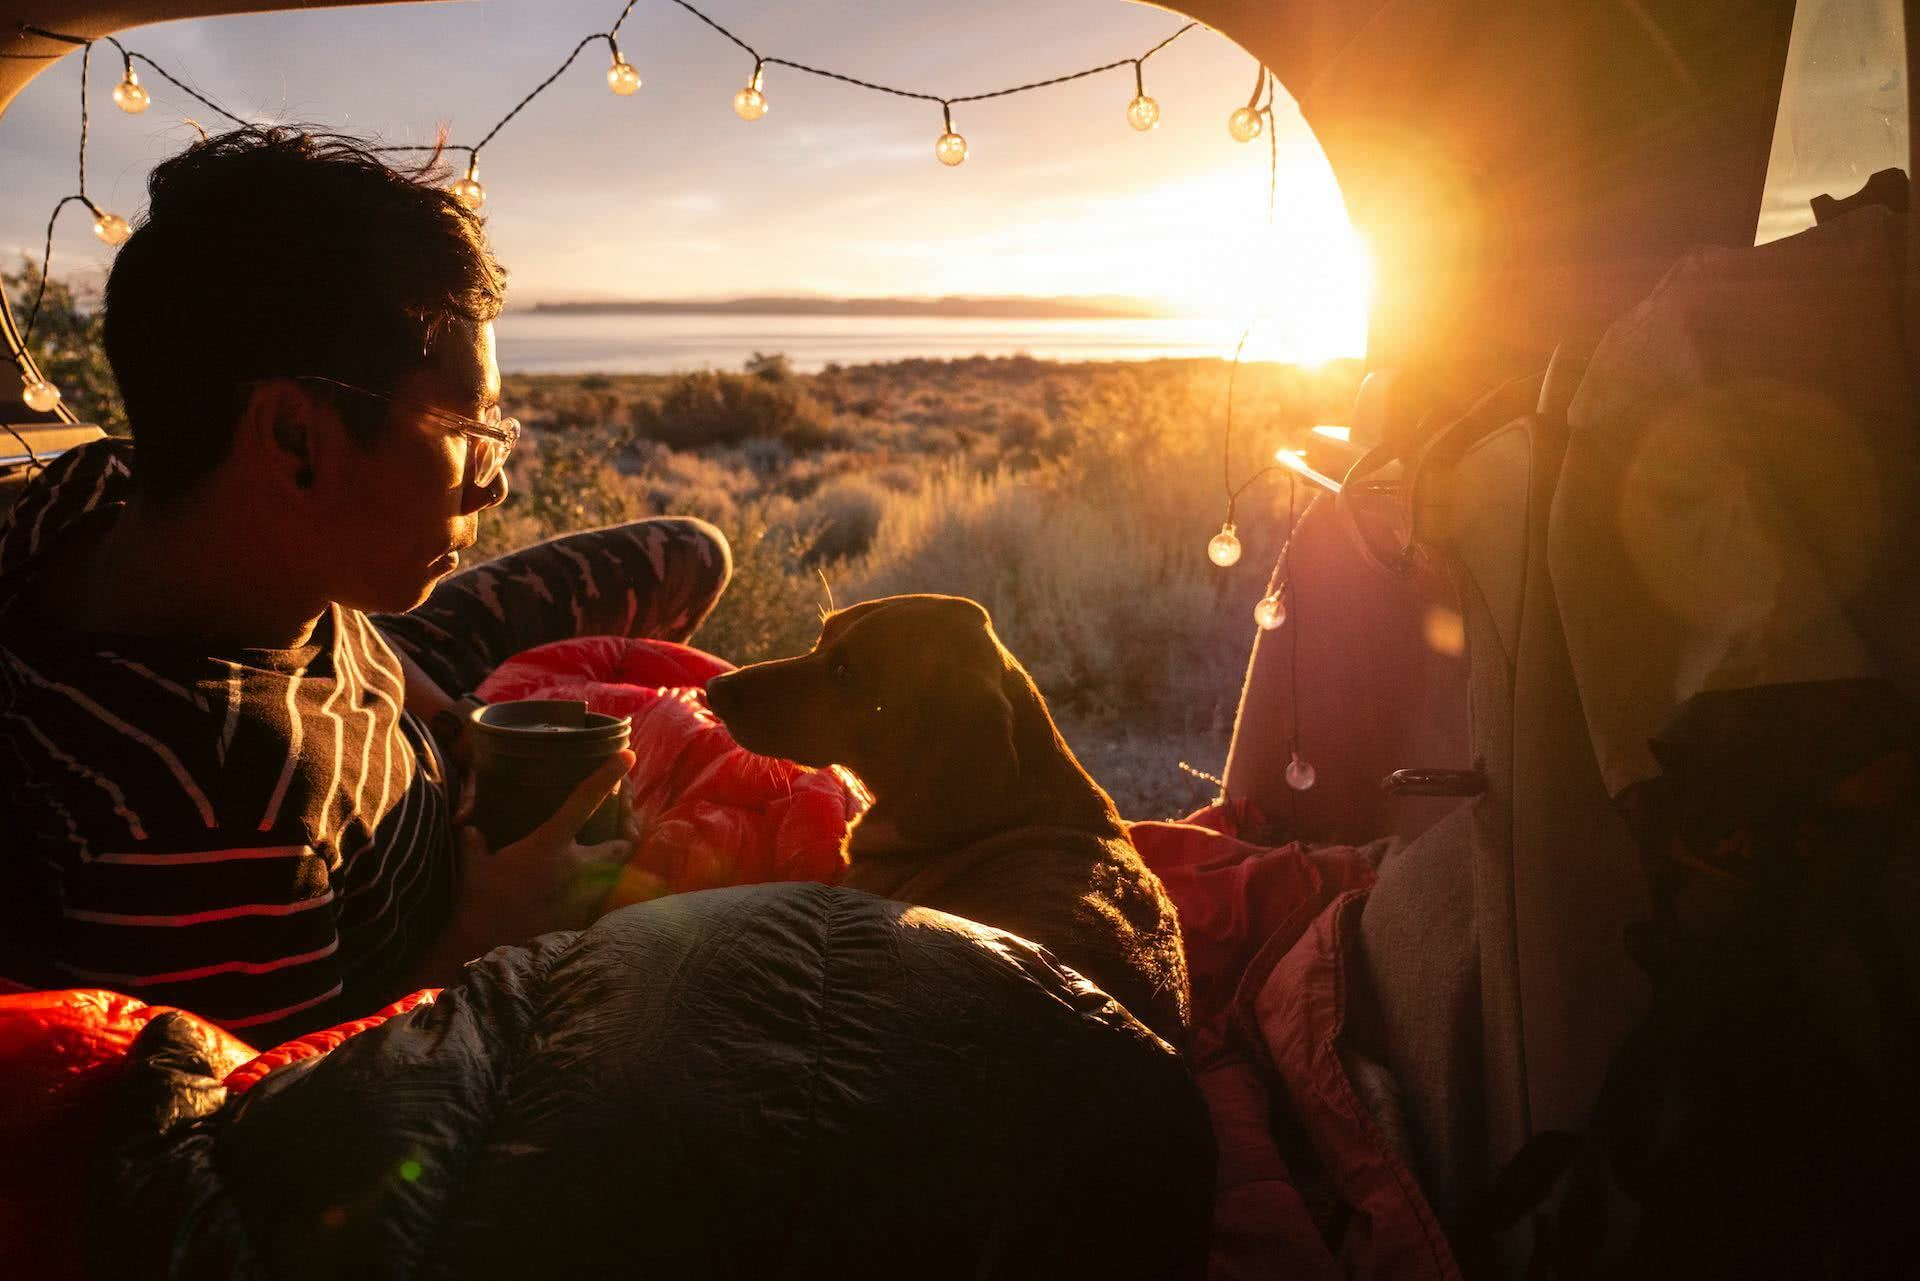 The Best Dog Friendly Camping In Victoria, Pat Corden, photo by Hoang M Nquyen from Unsplash, dog, tent, person, lake, sunset, lights, sleeping bag